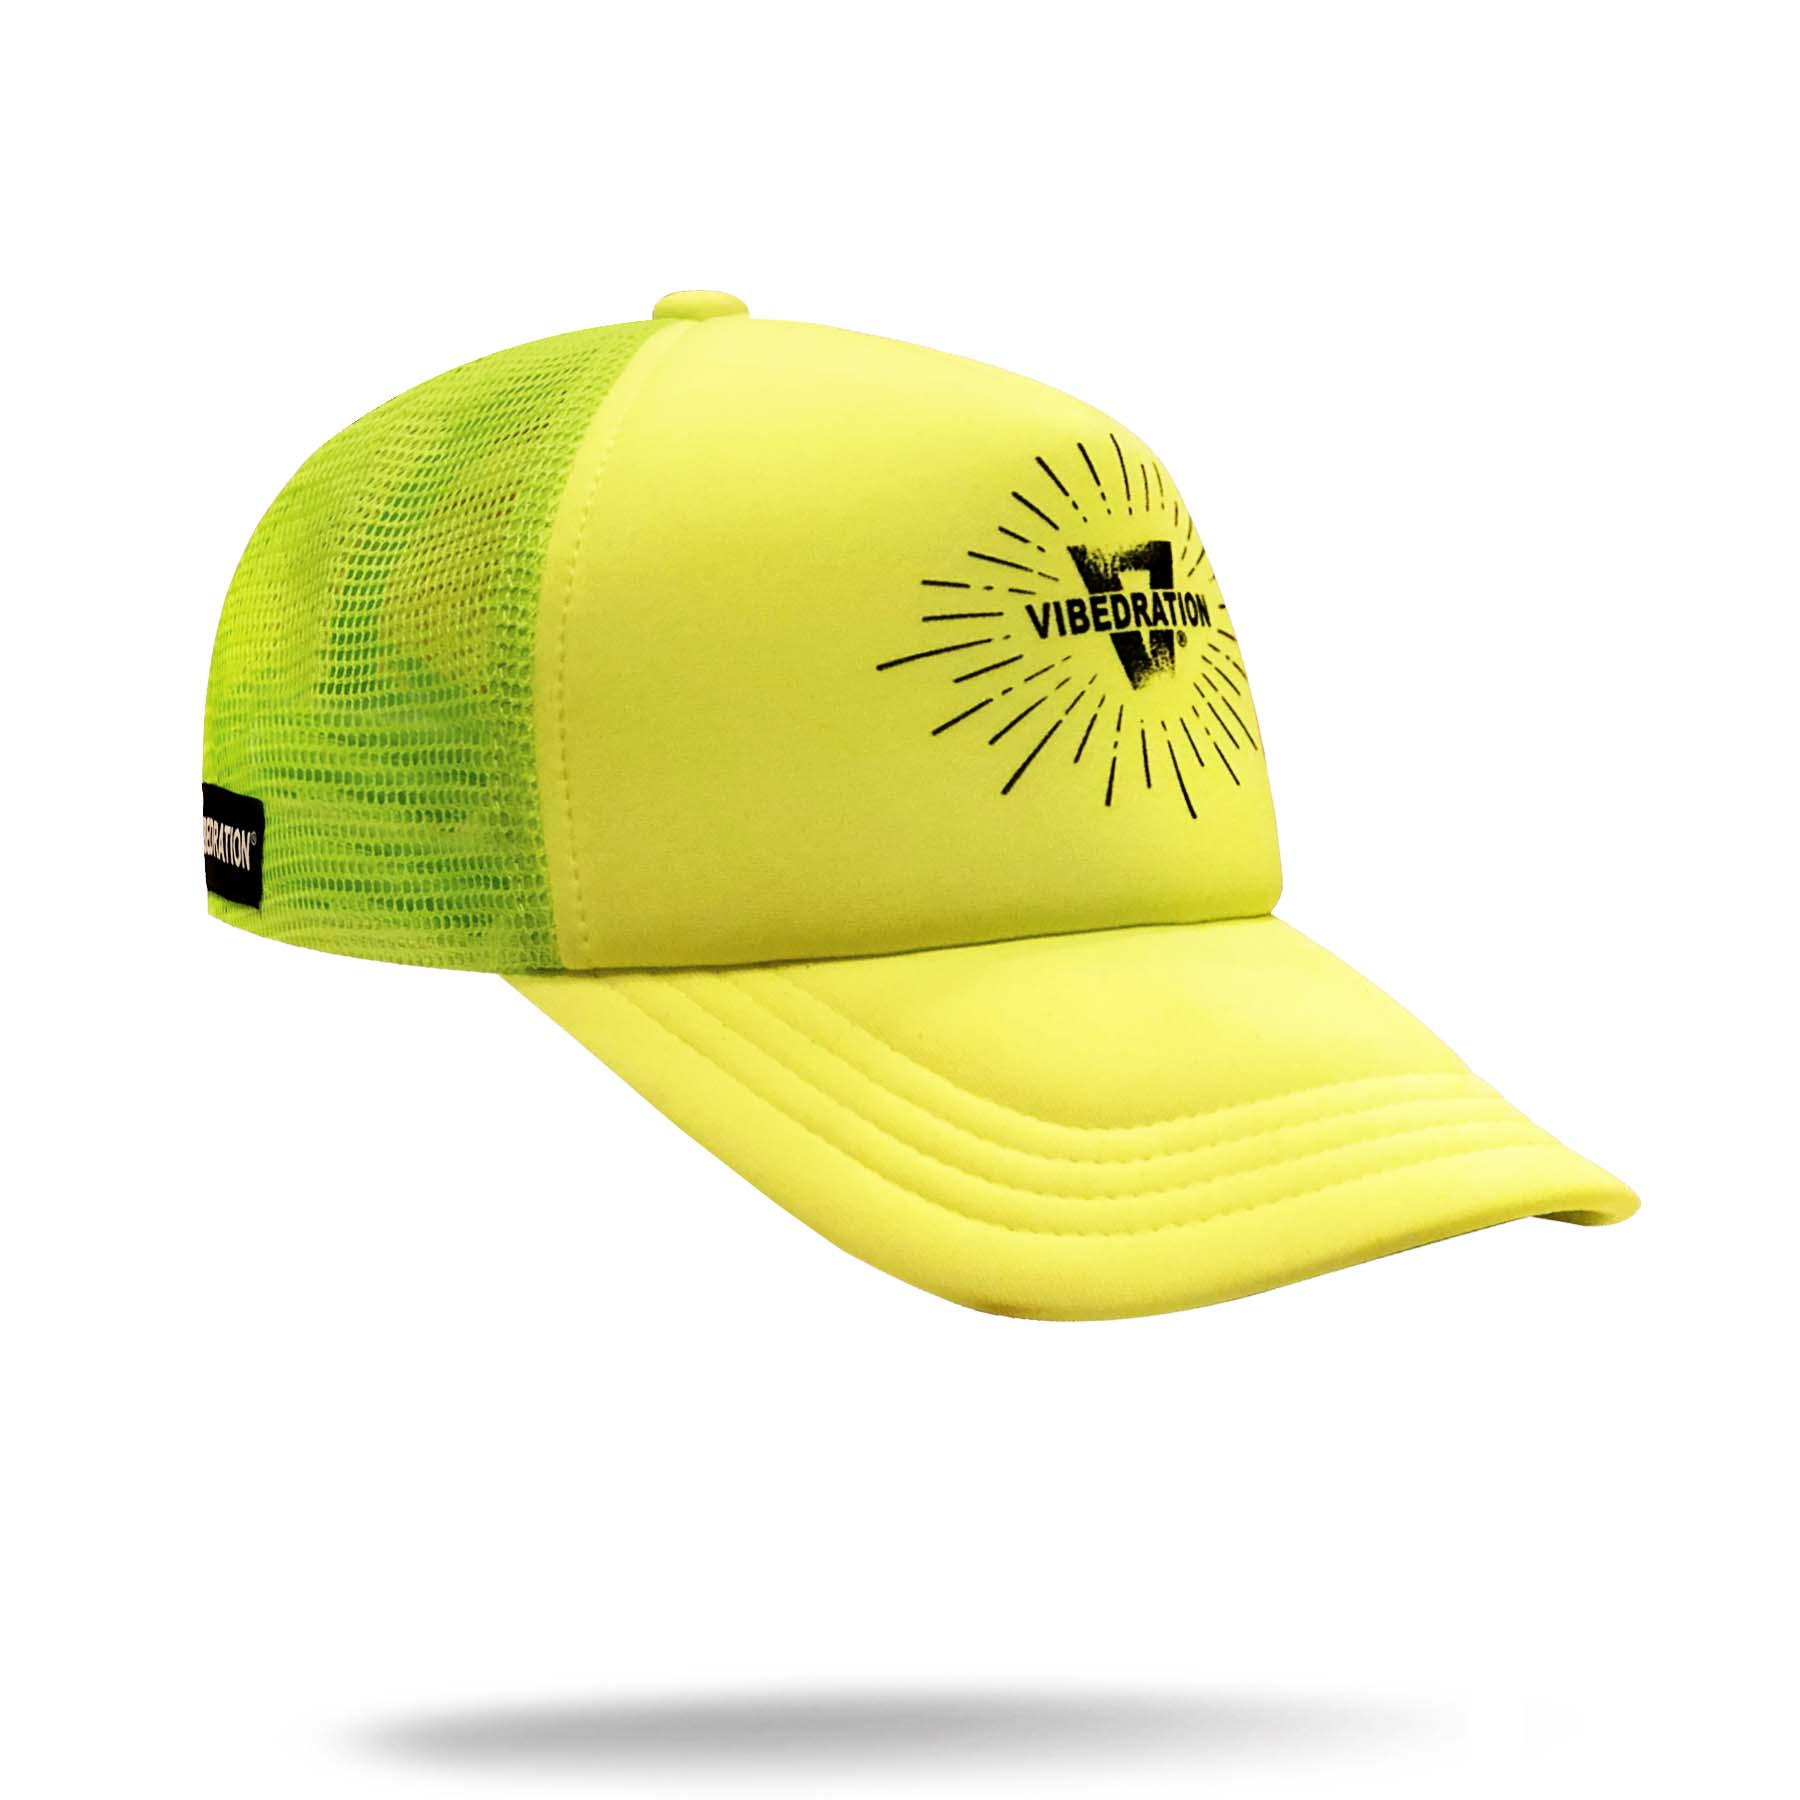 Neon yellow Vibedration adjustable trucker hat